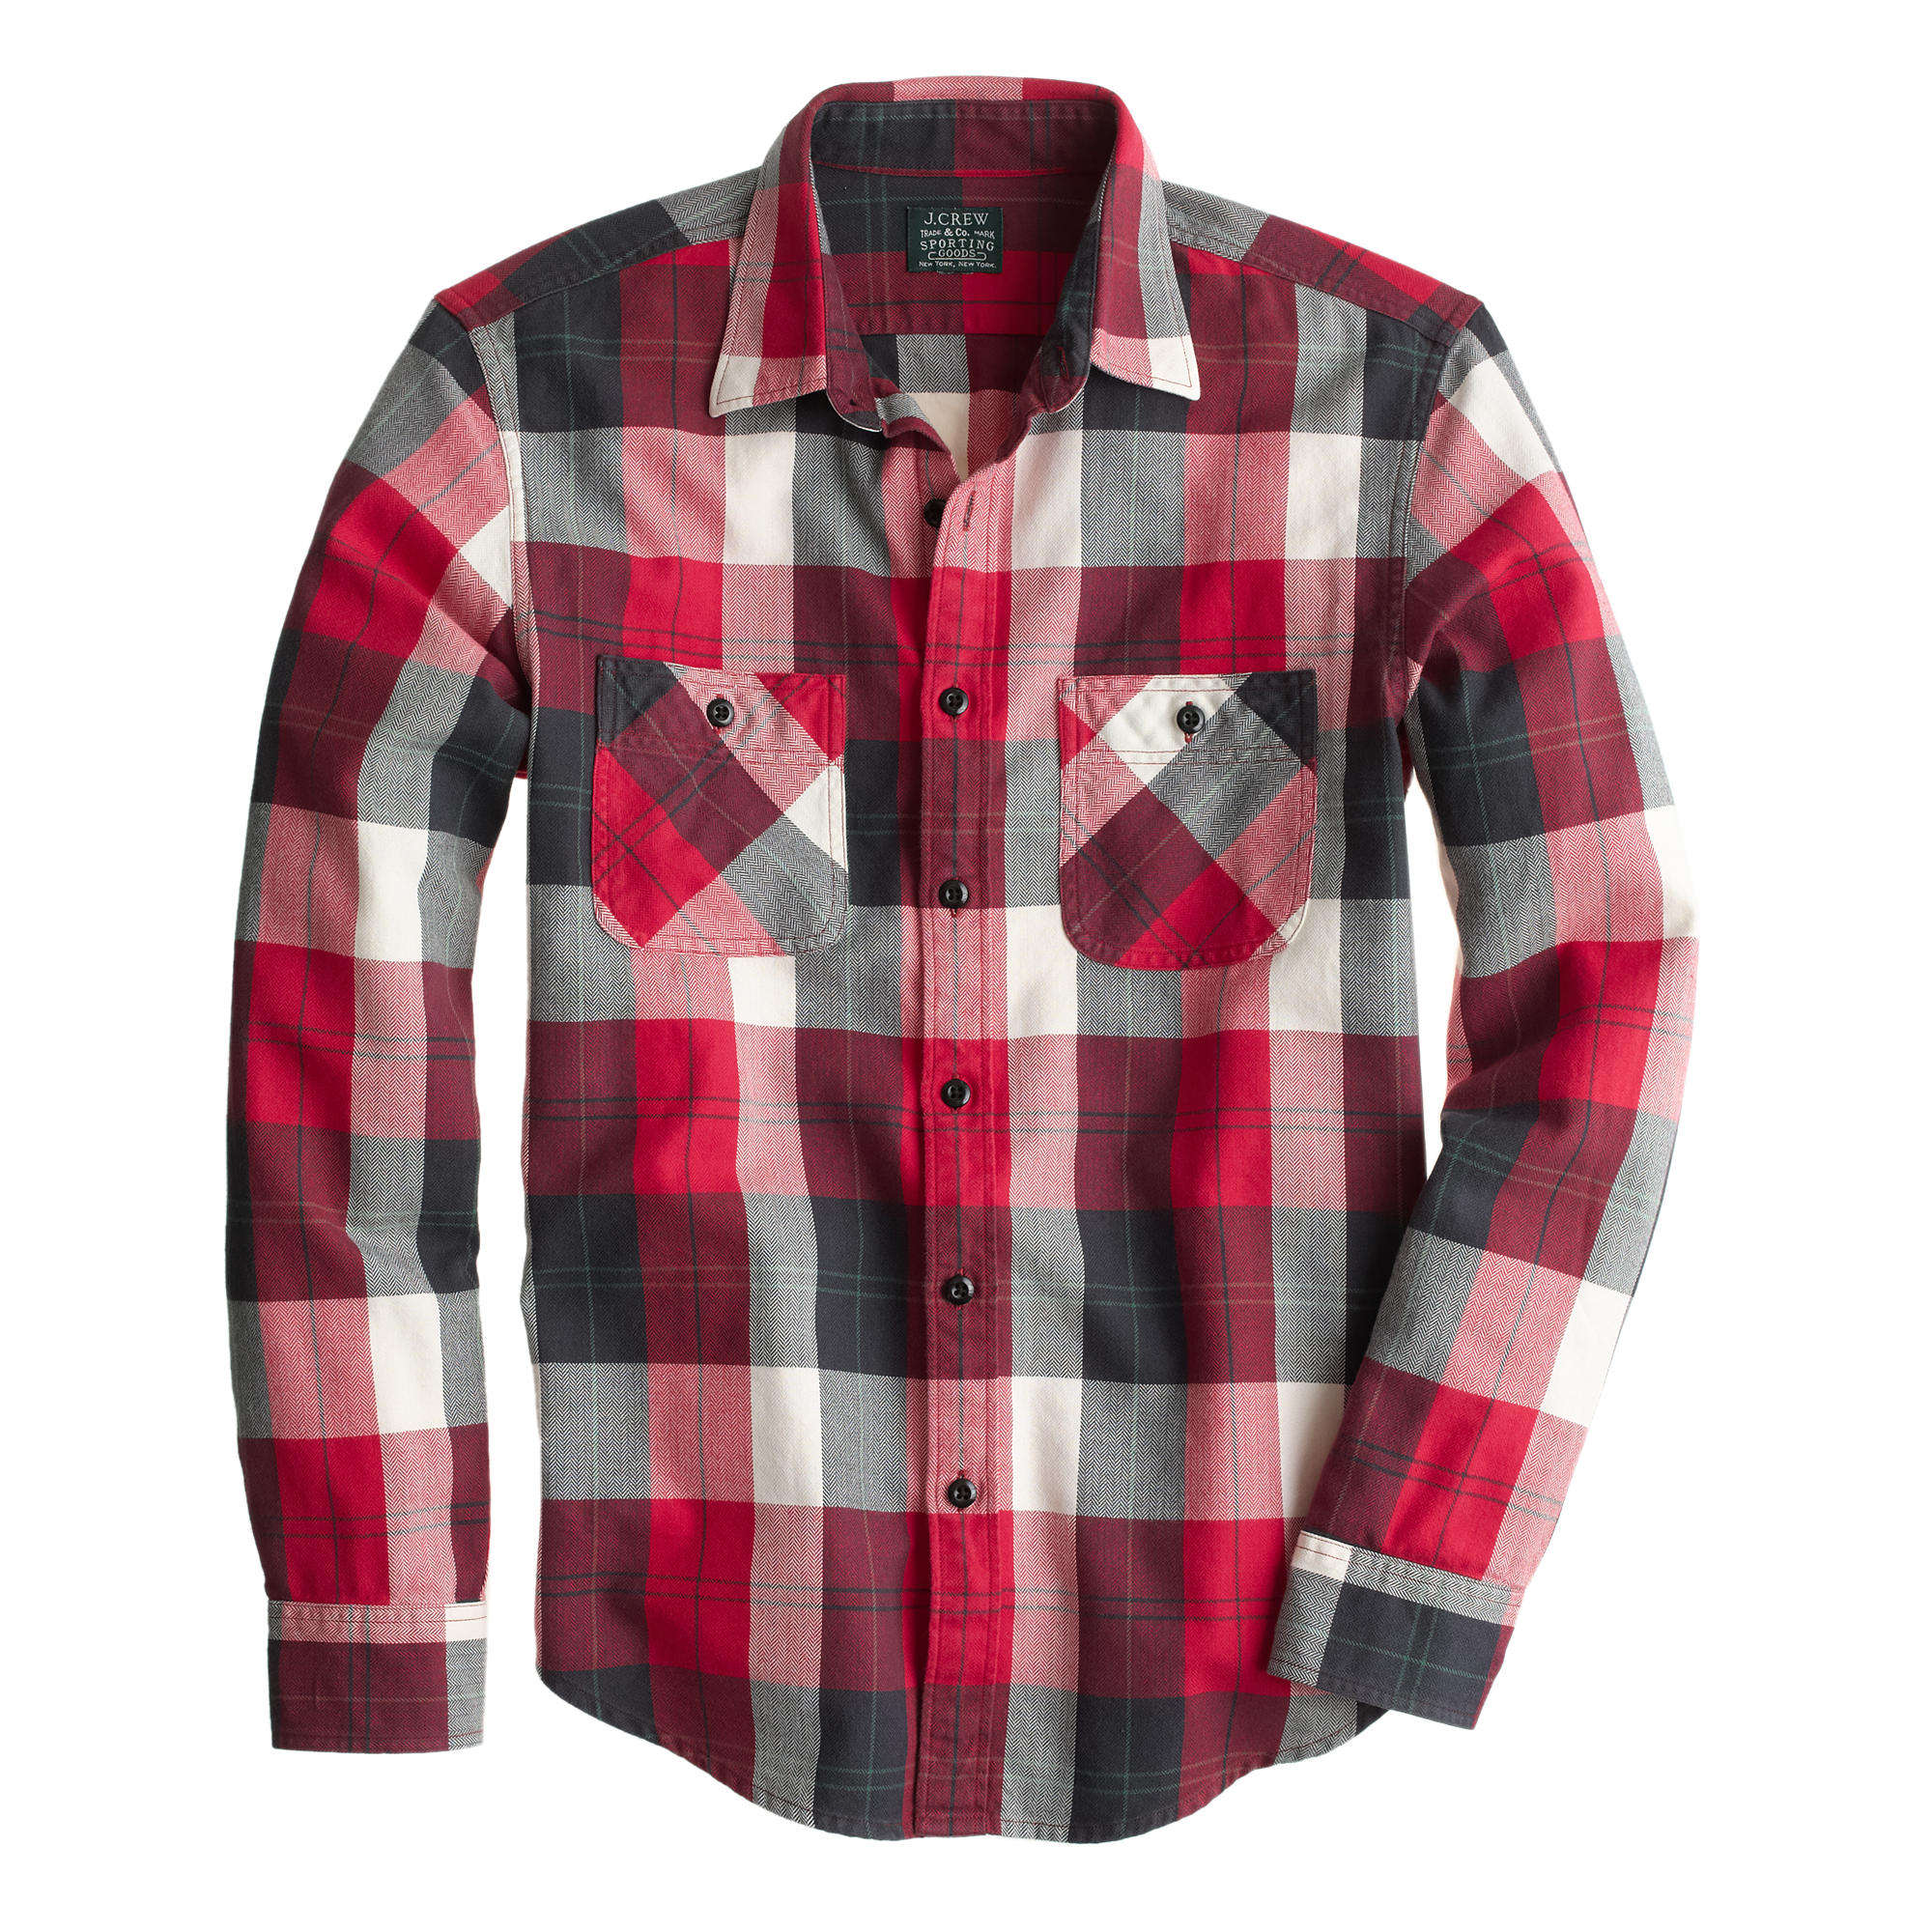 But, even in an age of flannel ubiquity, a great men's flannel shirt hard to find. Most new shirts are made of lesser materials sewn around ill-considered patterns. Most new shirts are made of lesser materials sewn around ill-considered patterns.